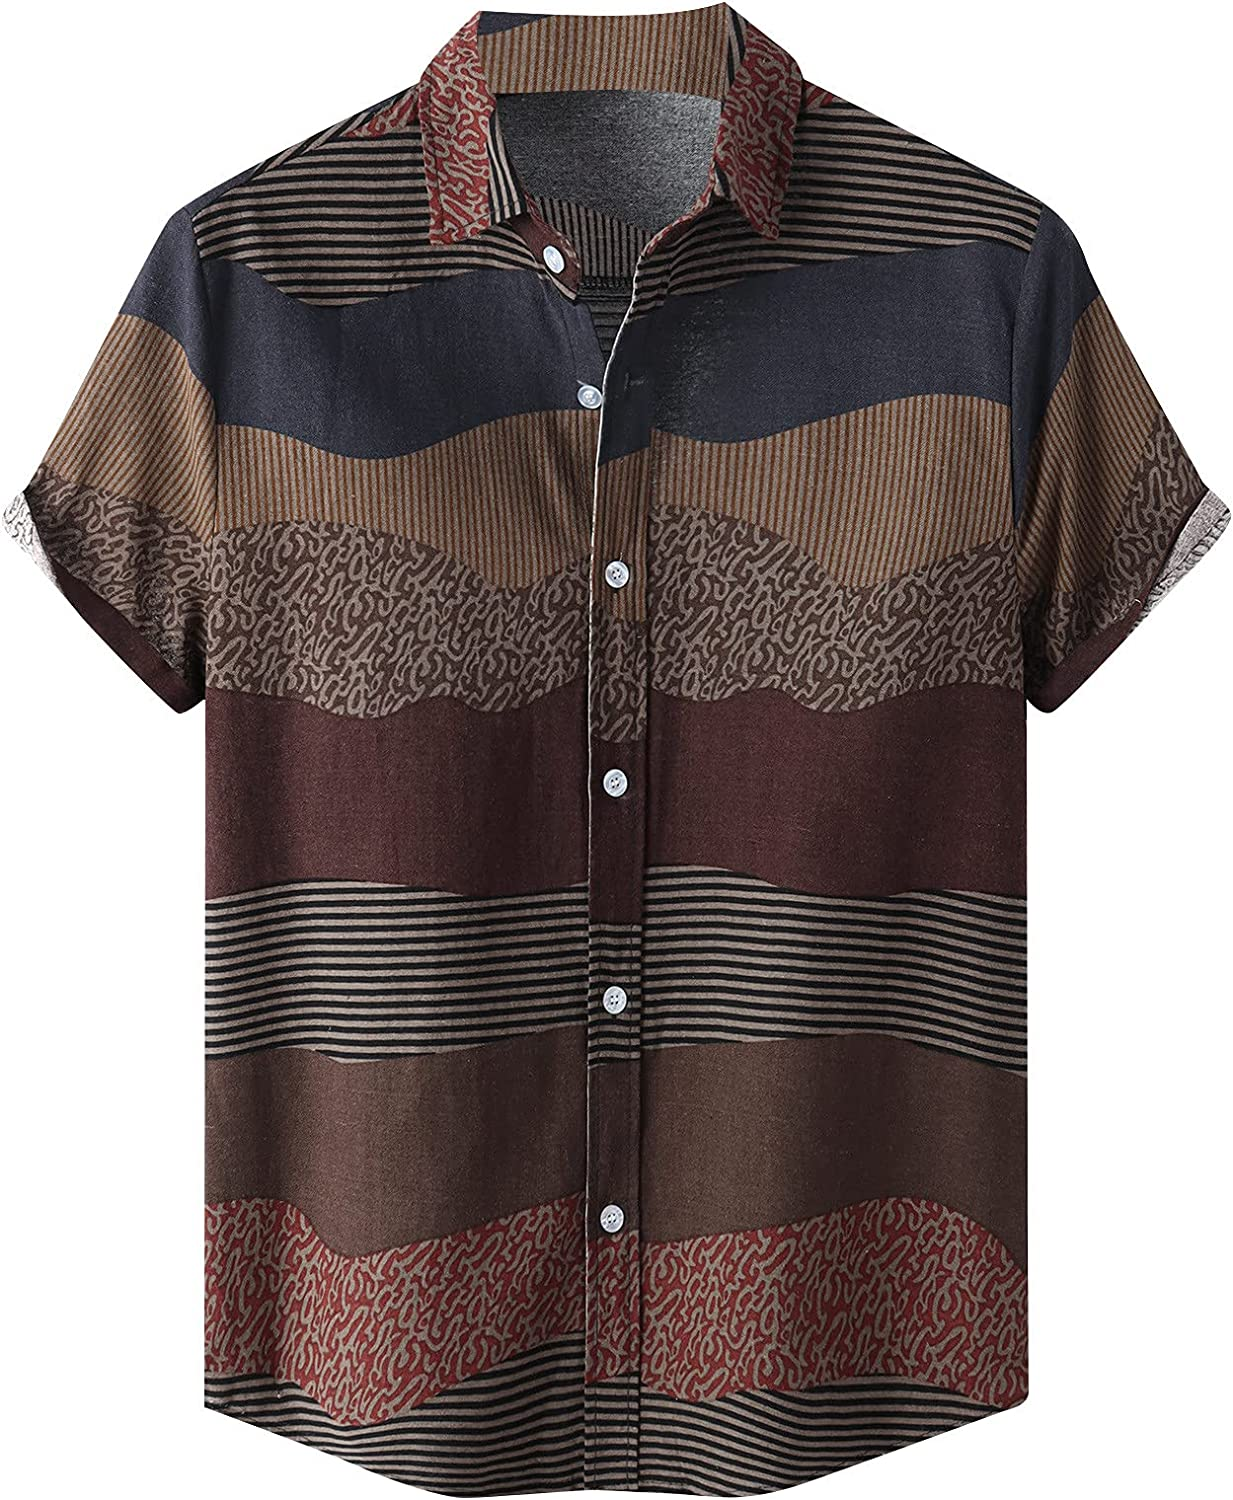 Mens Ethnic Printed Vintage Shirts Blouse Short Sleeve Casual Linen Button Down Shirt Summer Comfort Tops